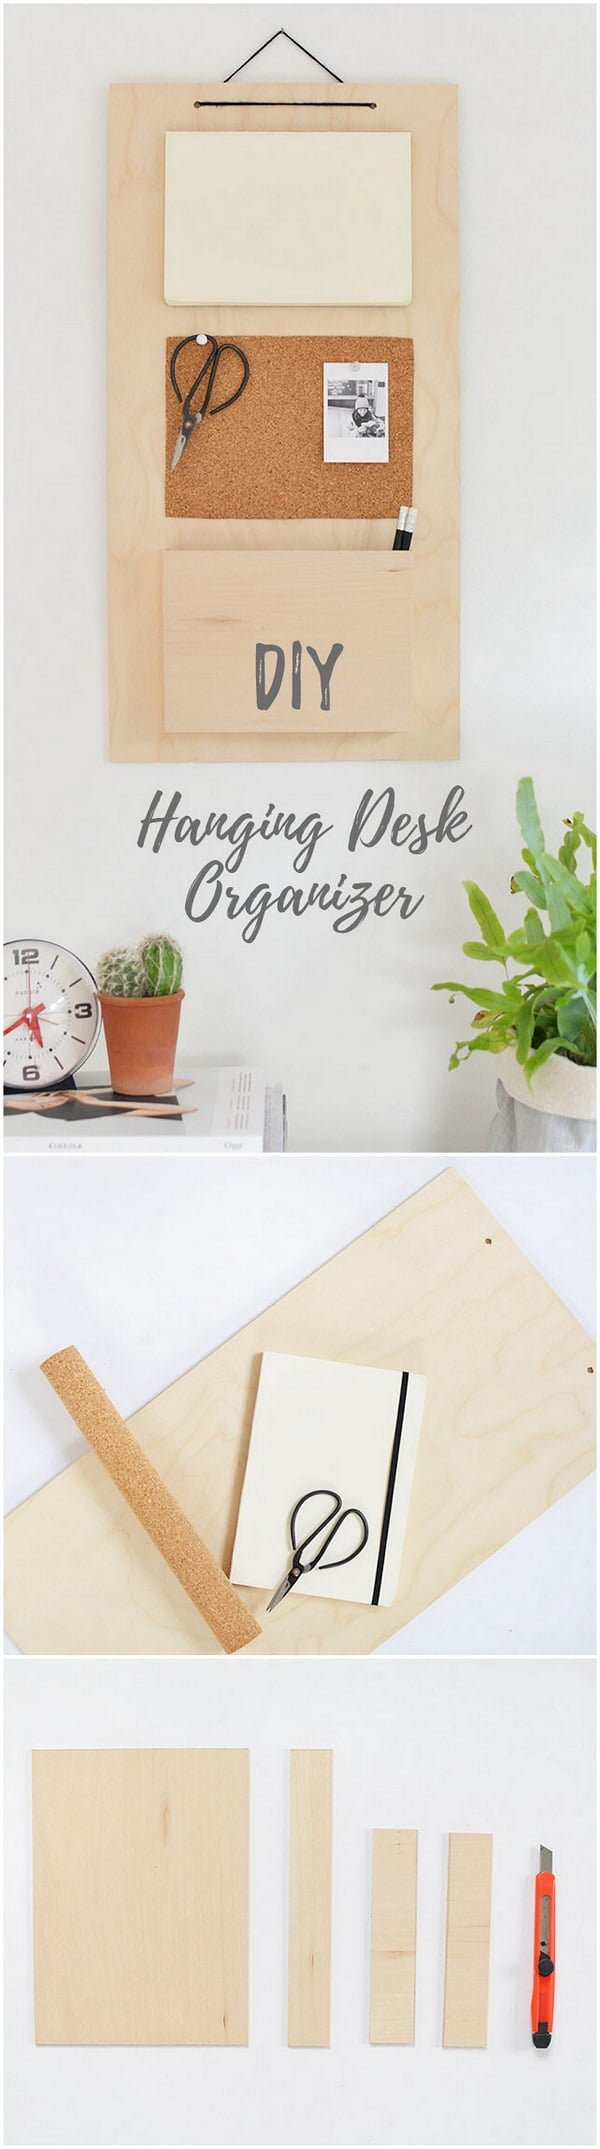 Check out this easy idea on how to make a #DIY minimalist hanging desk organizer #homedecor #crafts #wood #project